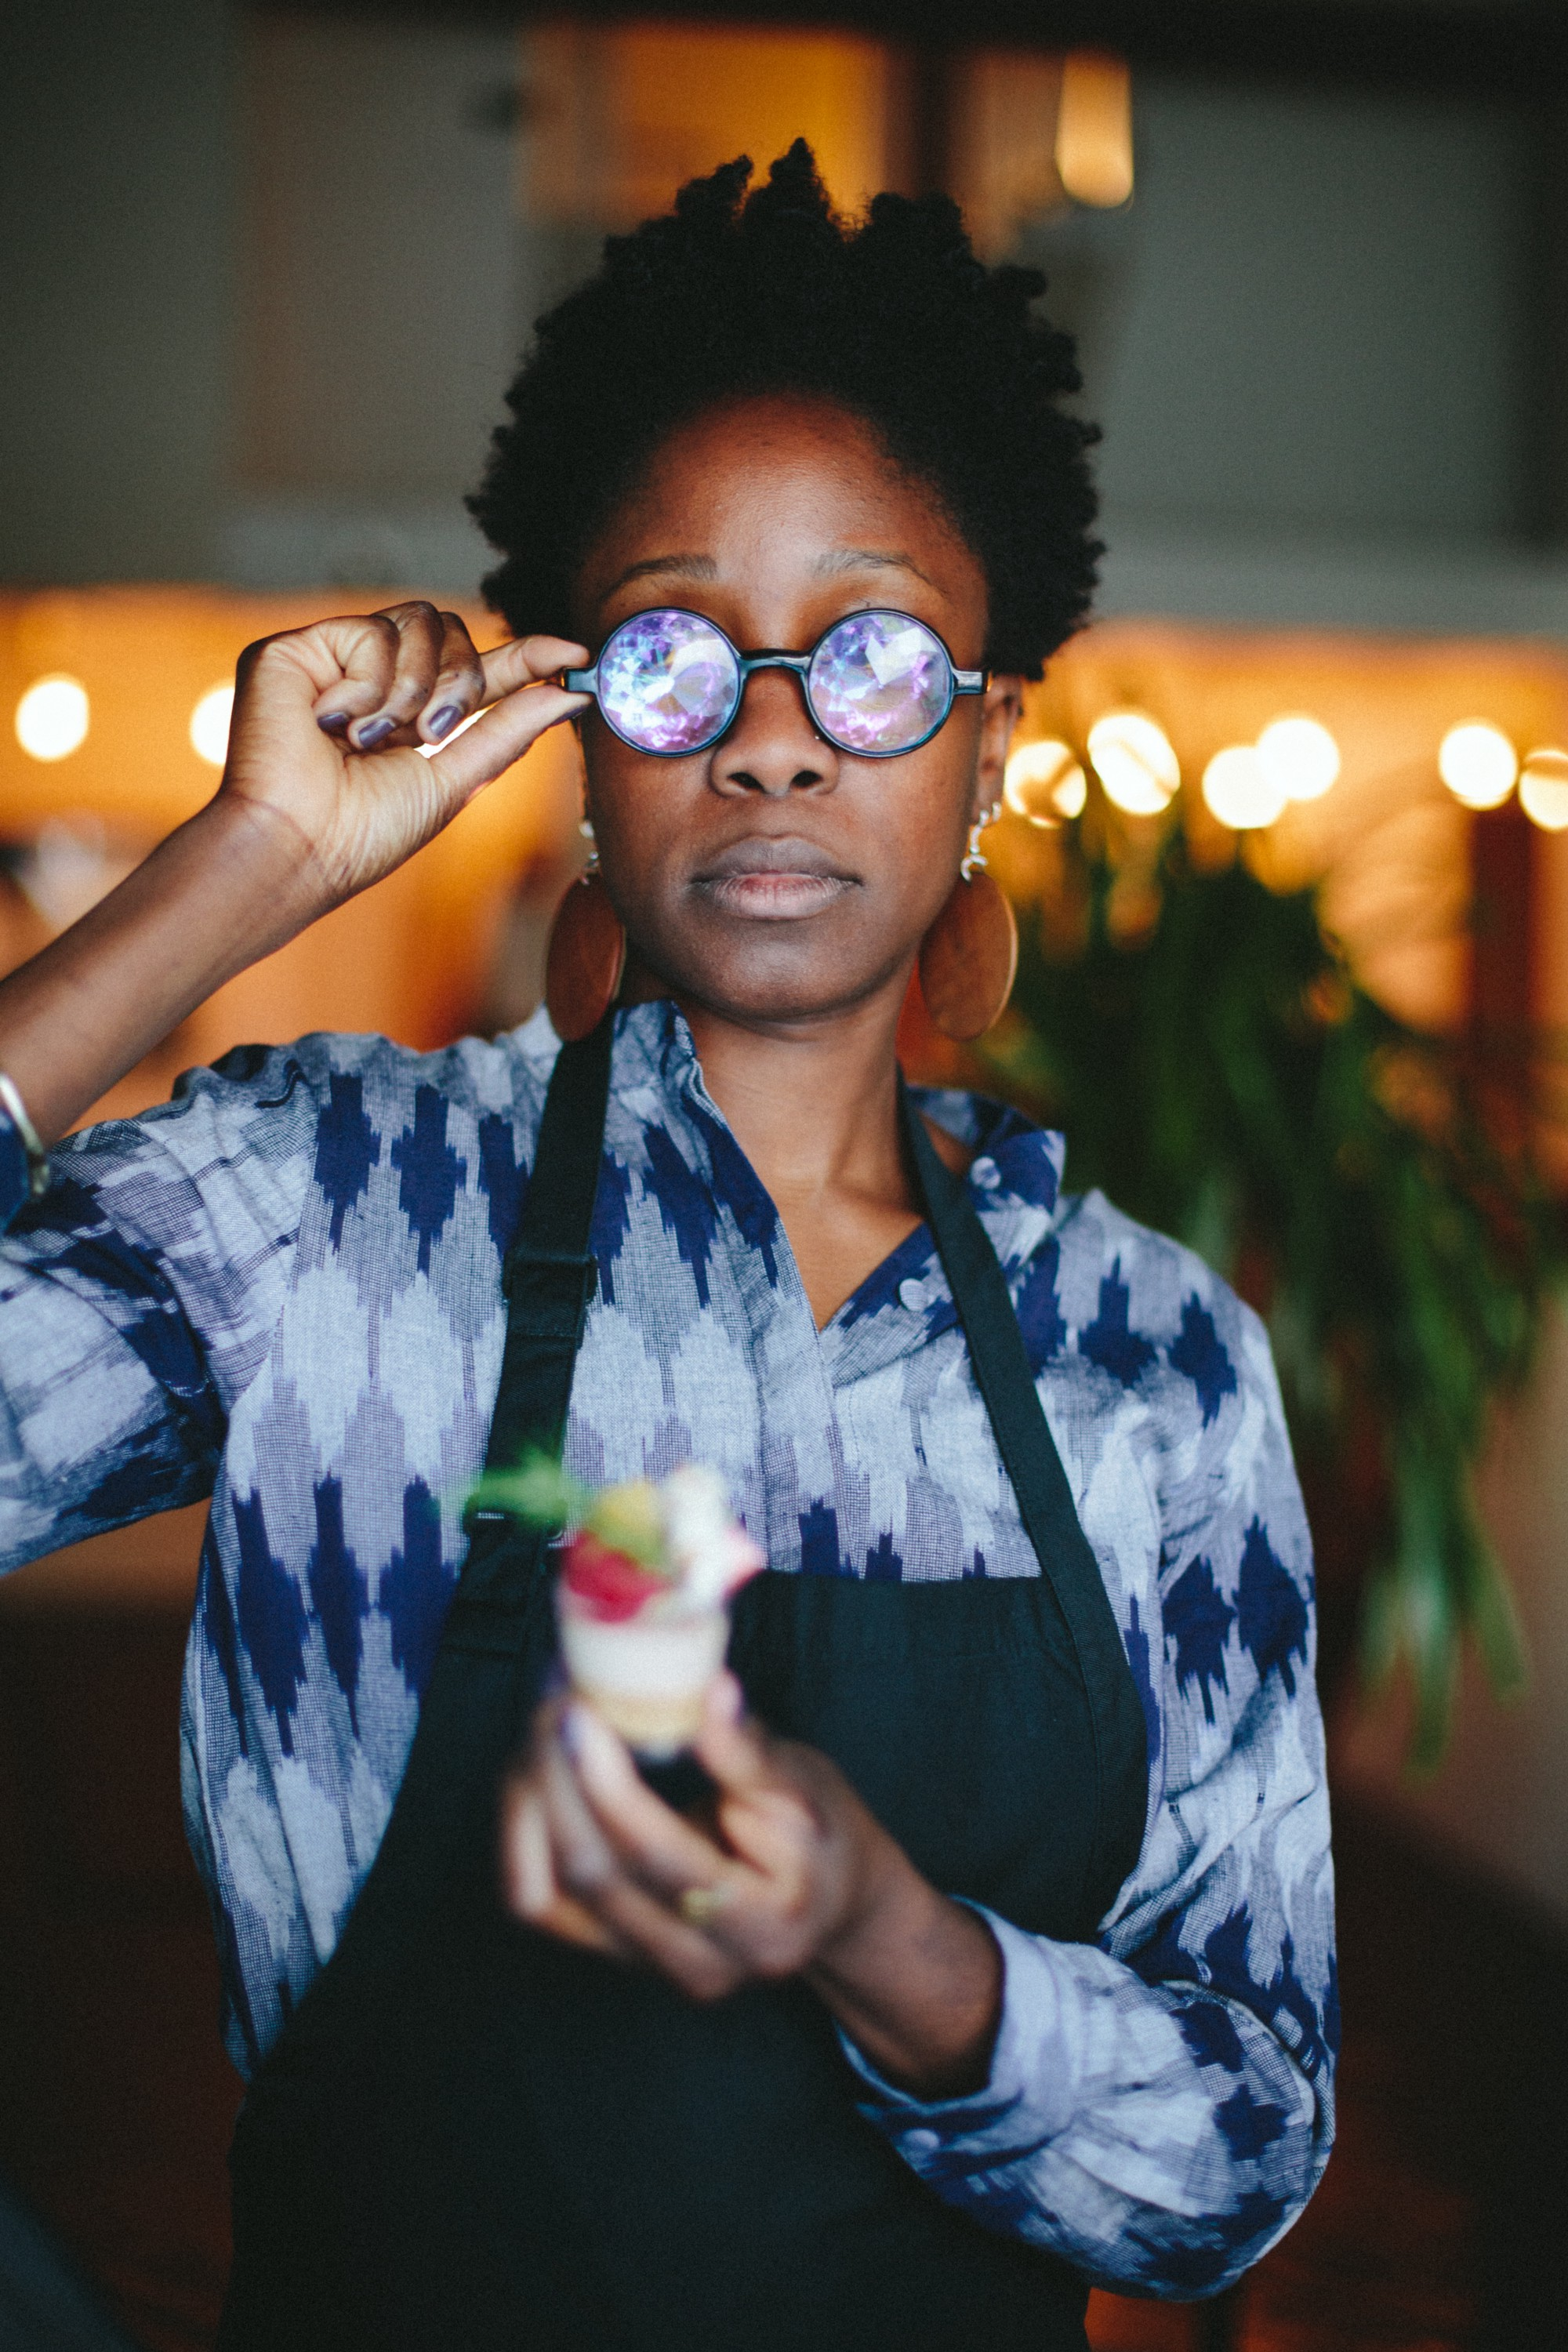 Yewande Komolafe wearing round glasses with iridescent lenses, holding a blurry dessert item.